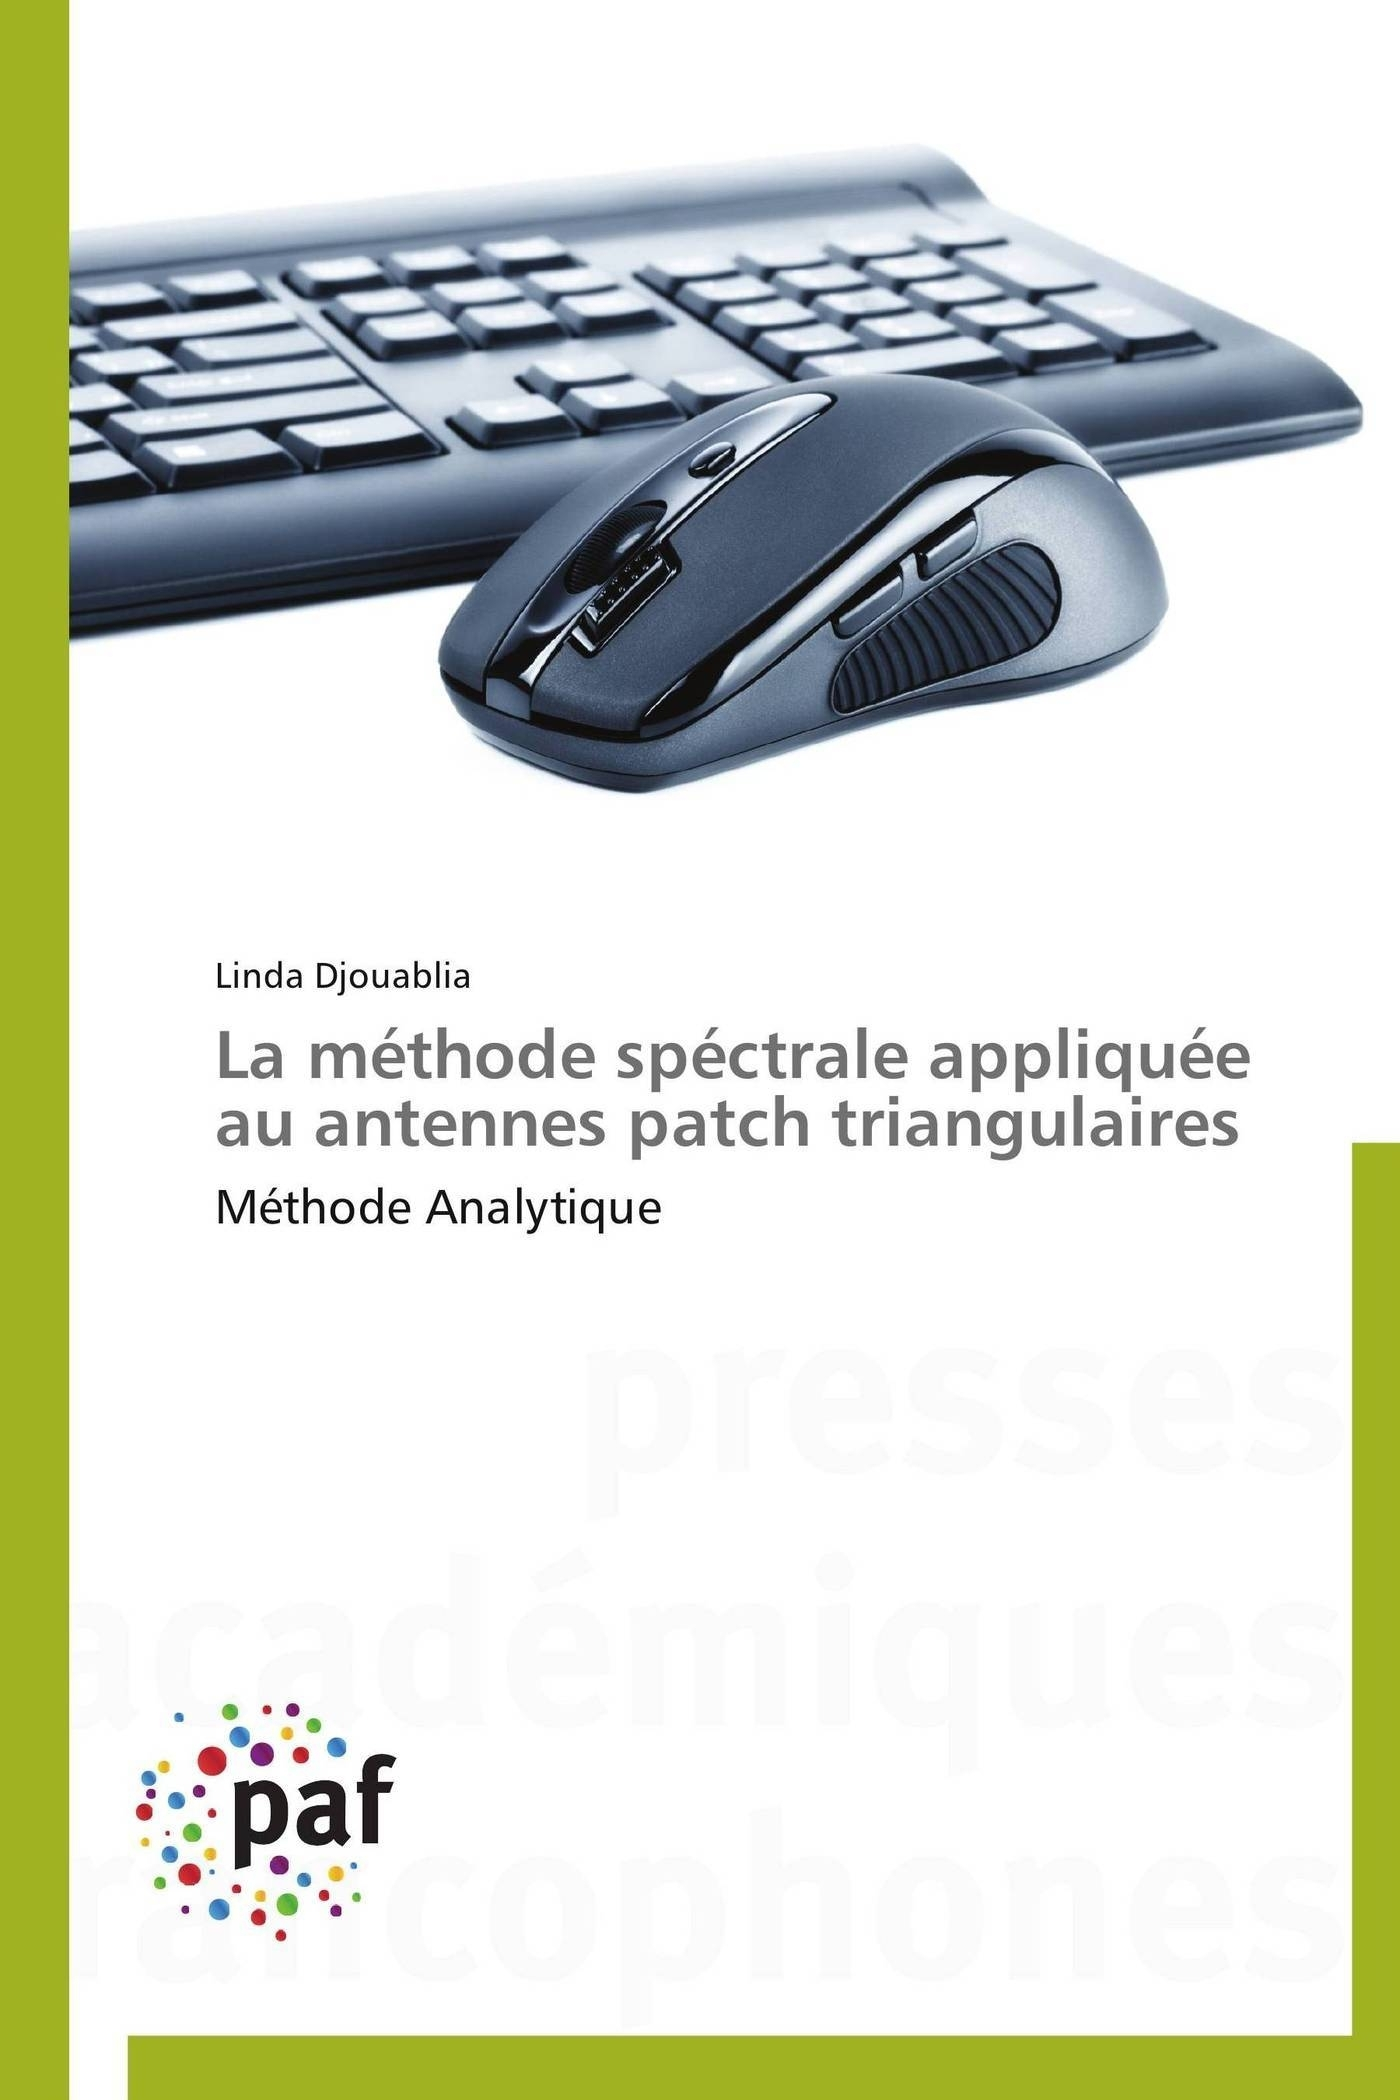 LA METHODE SPECTRALE APPLIQUEE AU ANTENNES PATCH TRIANGULAIRES